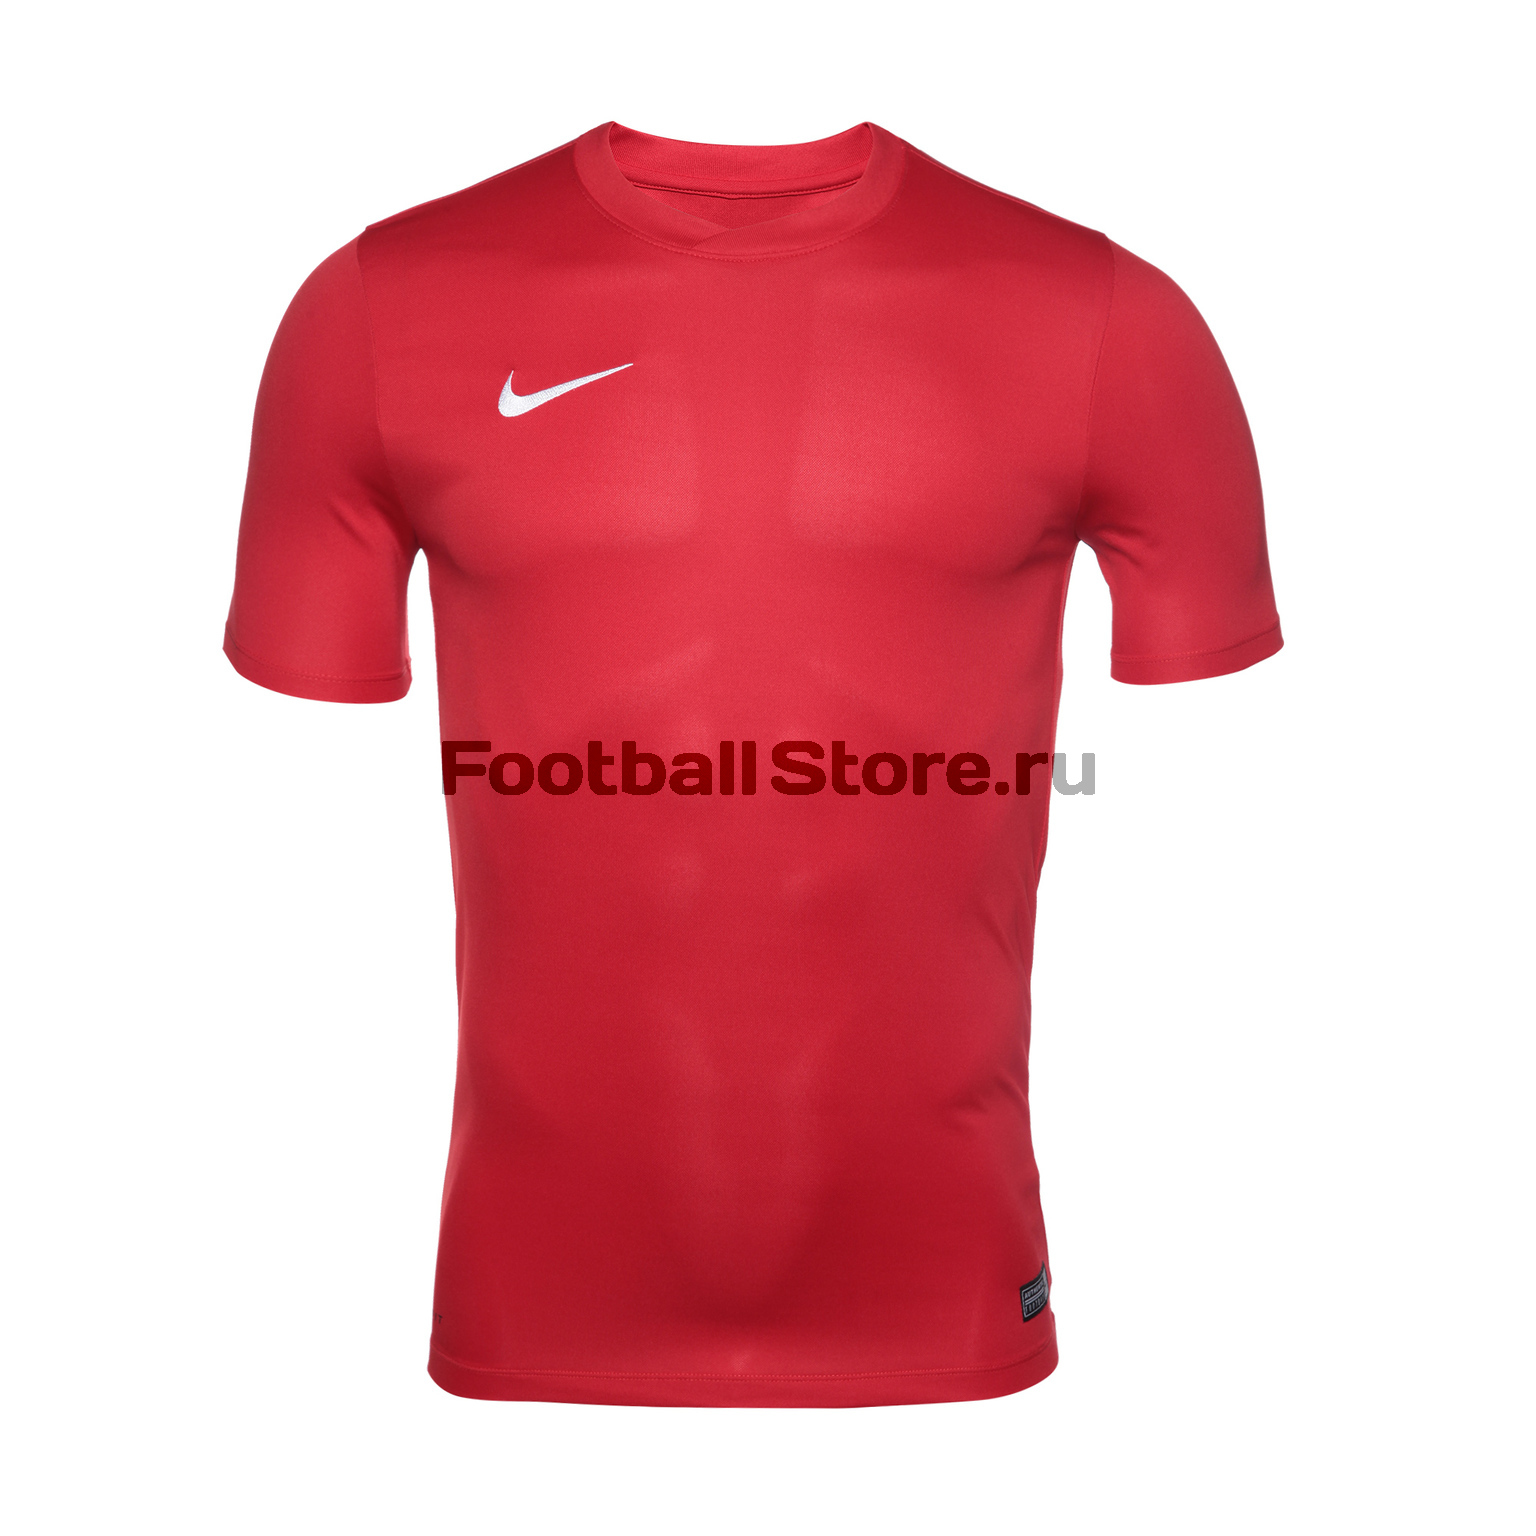 Футболка Nike Park VI JSY 725891-657 гетры nike classic football fit dri sx4120 601